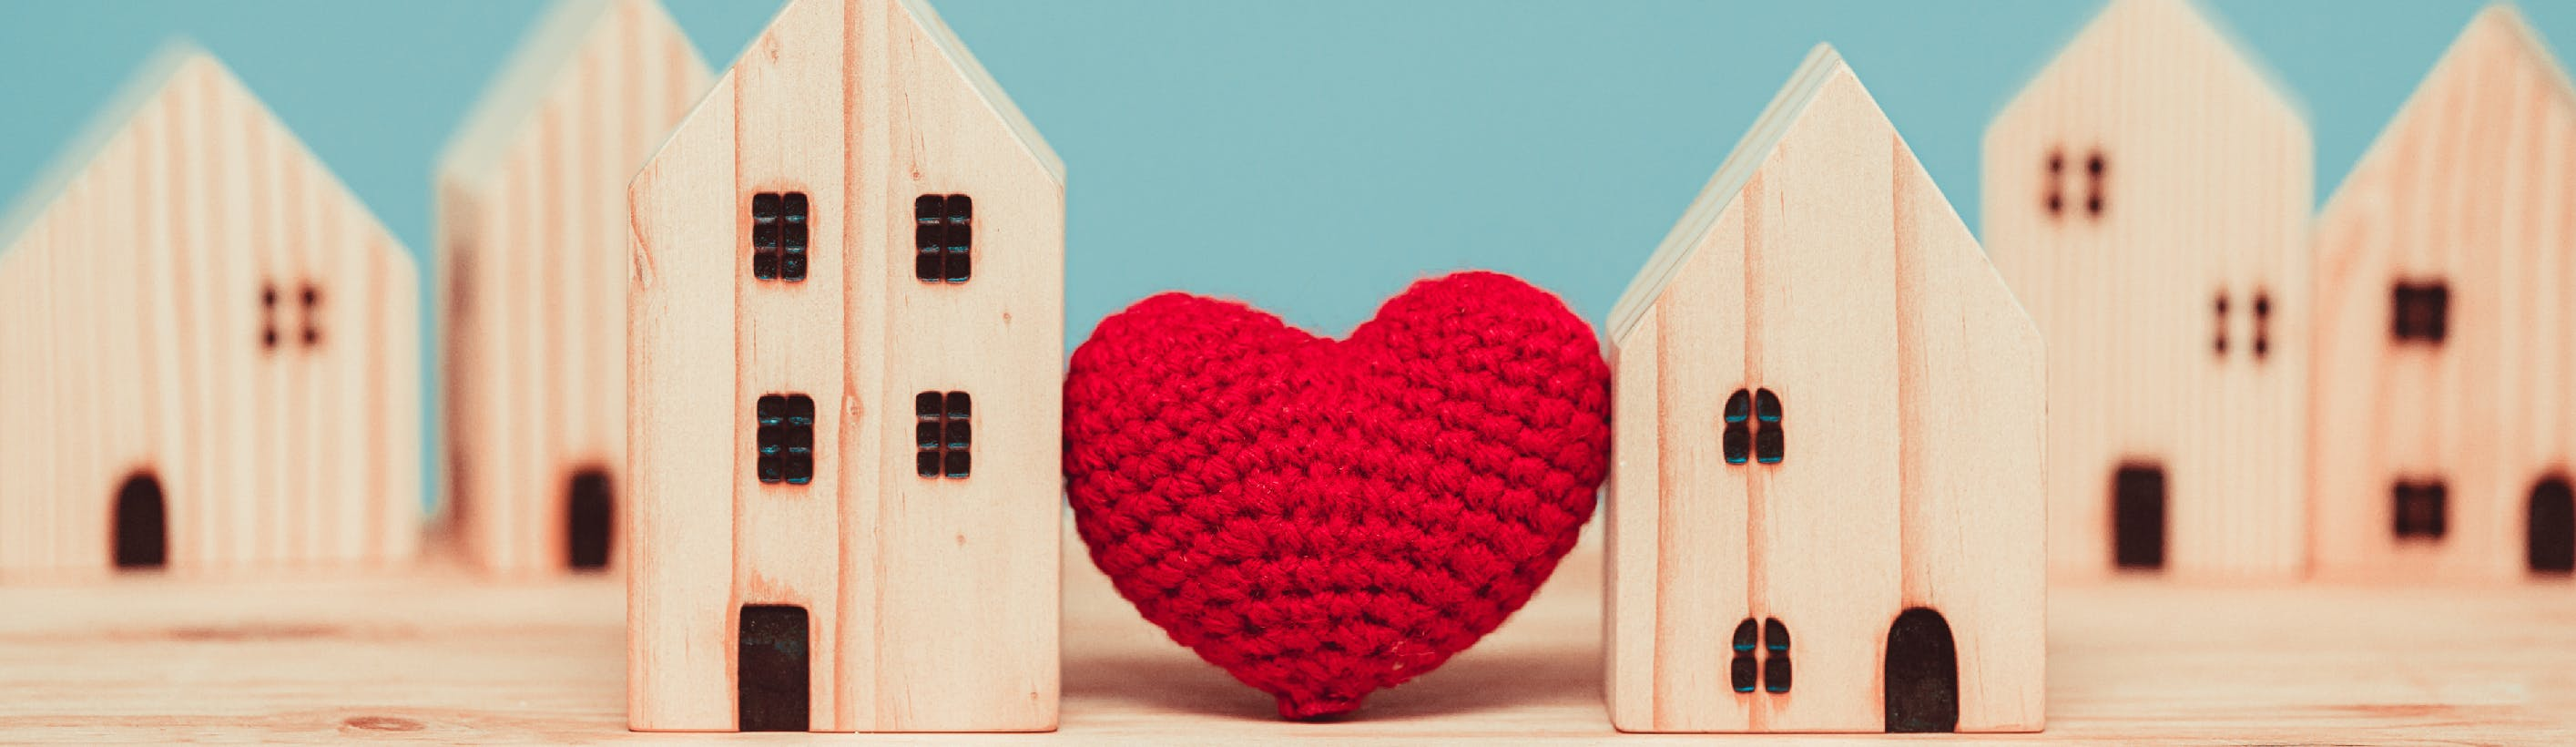 Red heart between two houses in wood model